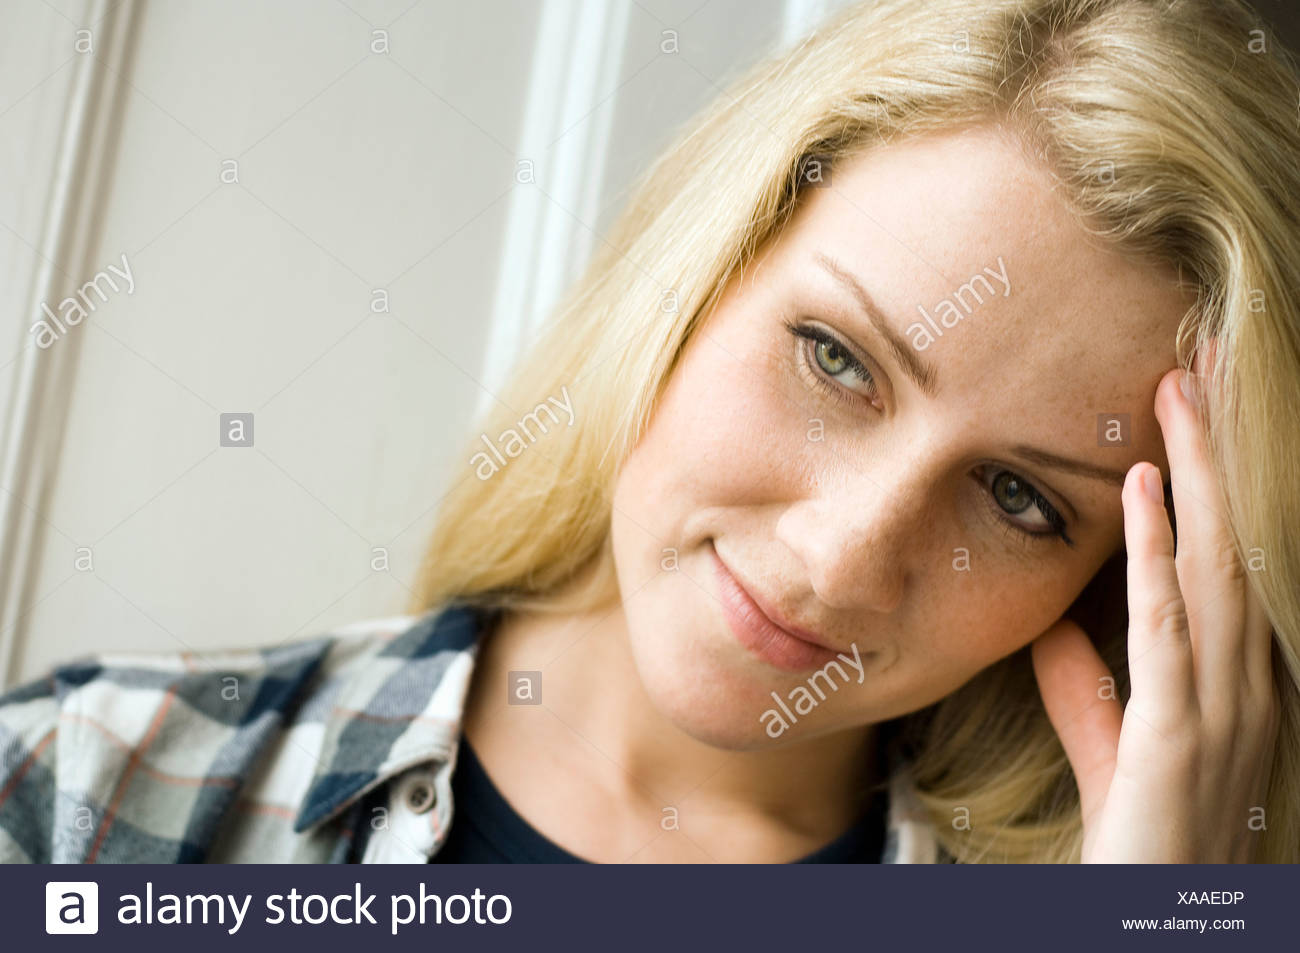 Close up of woman rubbing her forehead - Stock Image